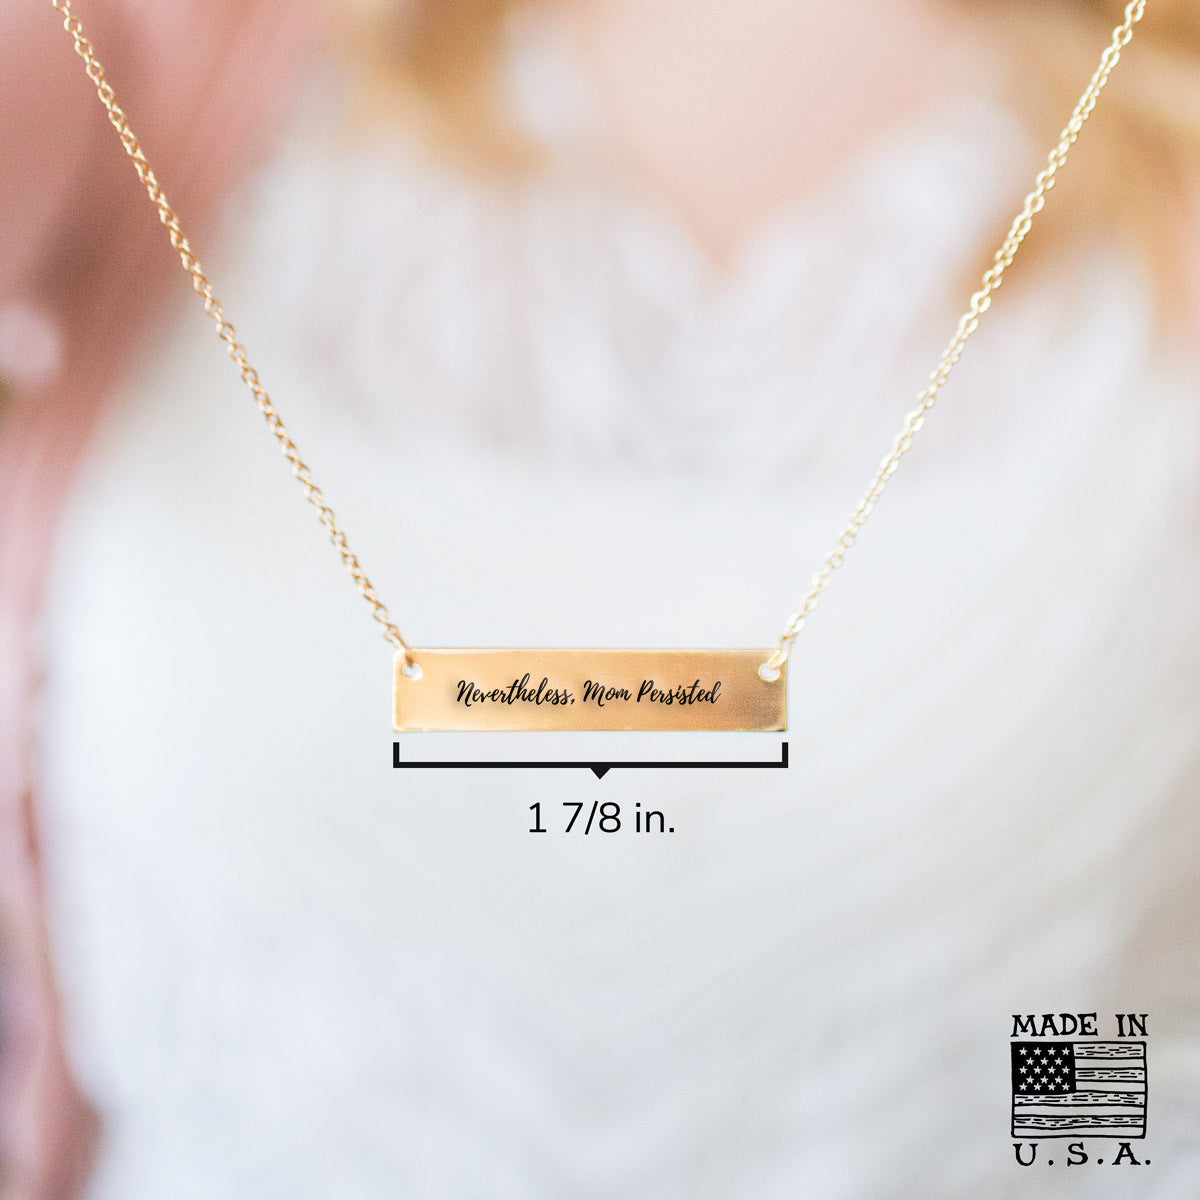 Nevertheless Mom Persisted Gold / Silver Bar Necklace